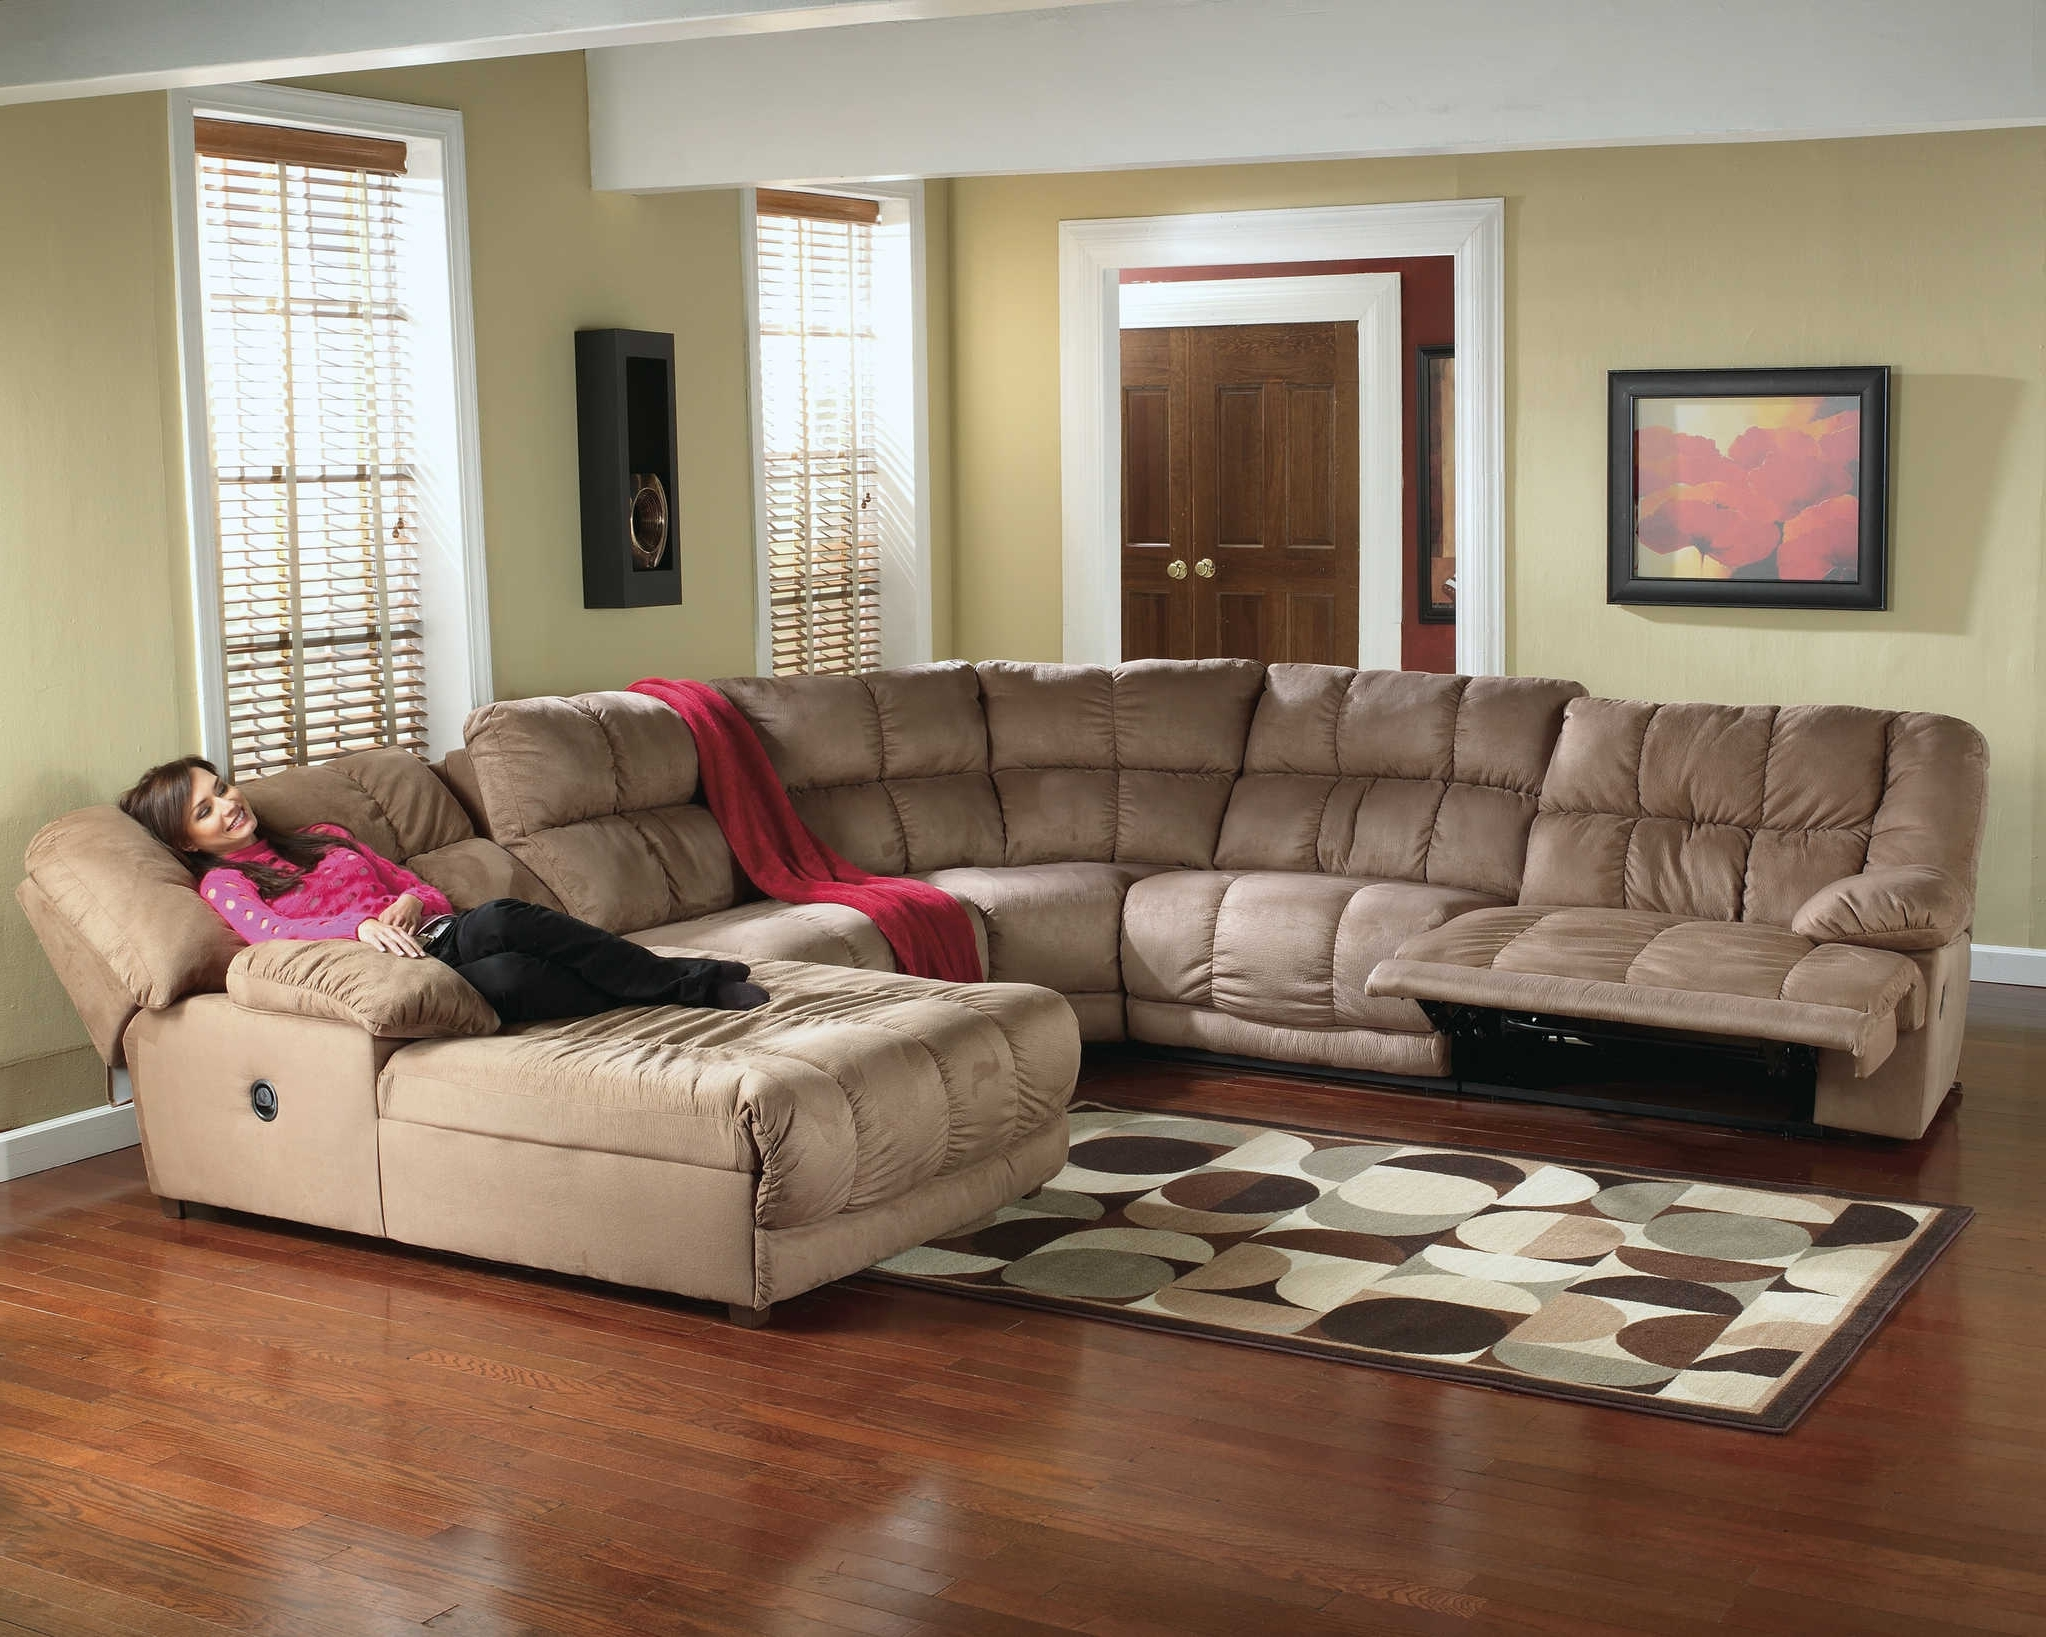 Astonishing Sectional Sofas With Chaise And Recliner 31 About In Recent Las Vegas Sectional Sofas (View 9 of 15)